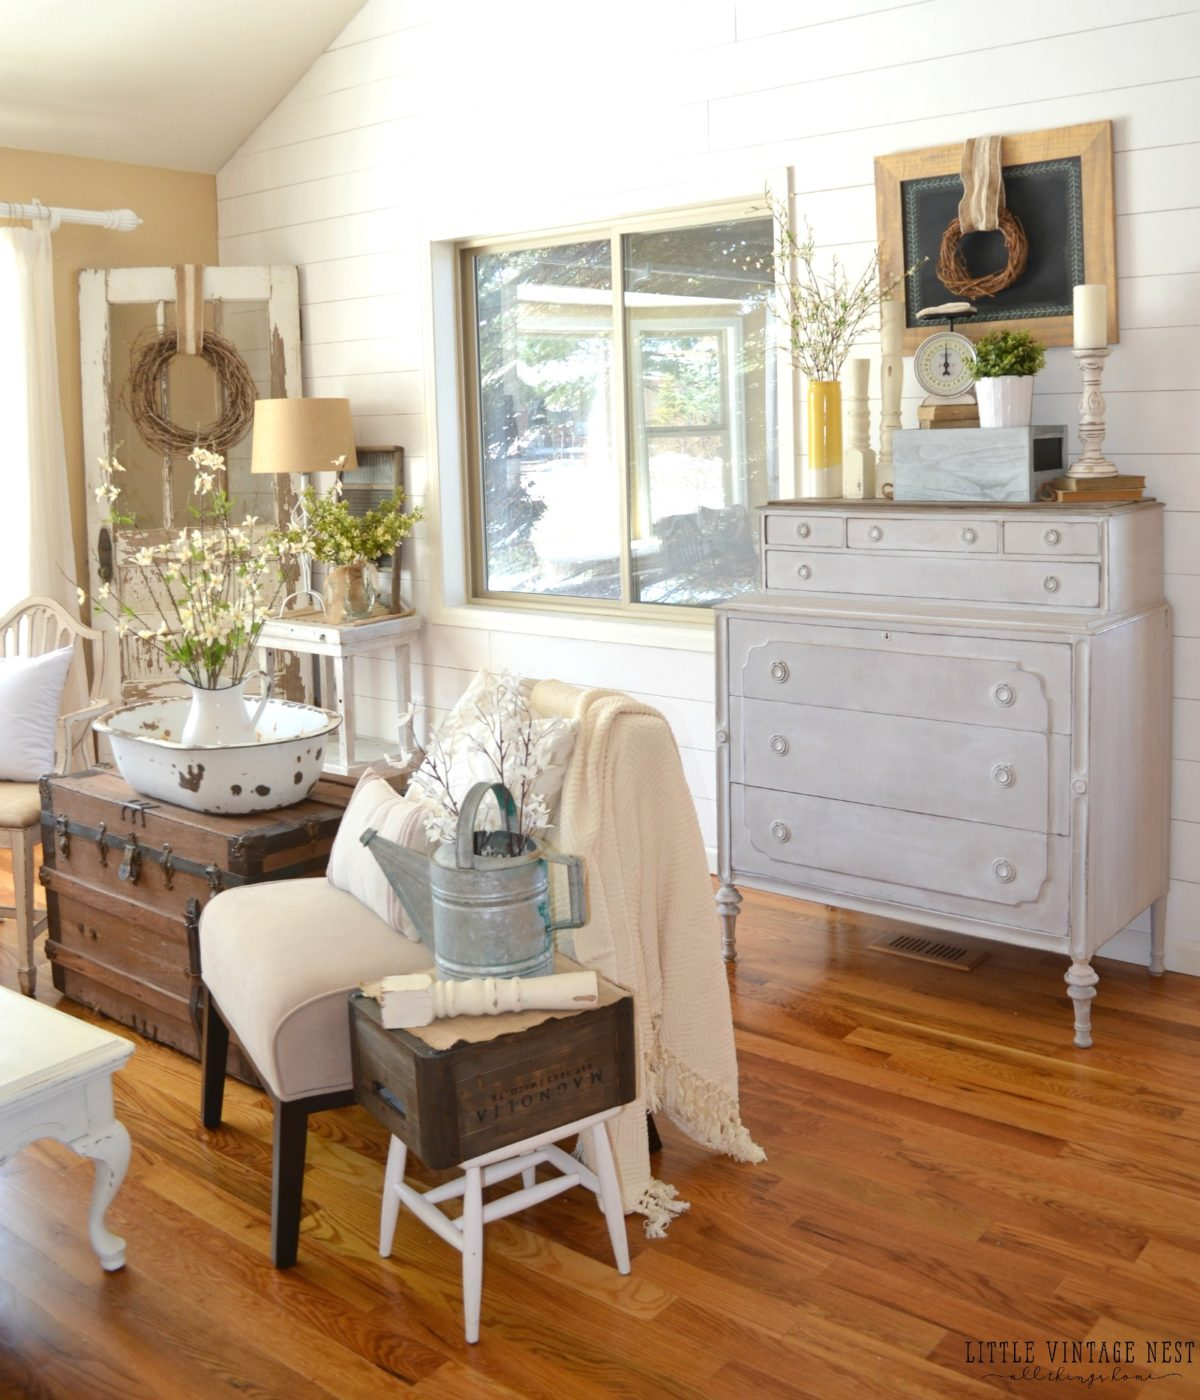 How to Decorate with Vintage Decor